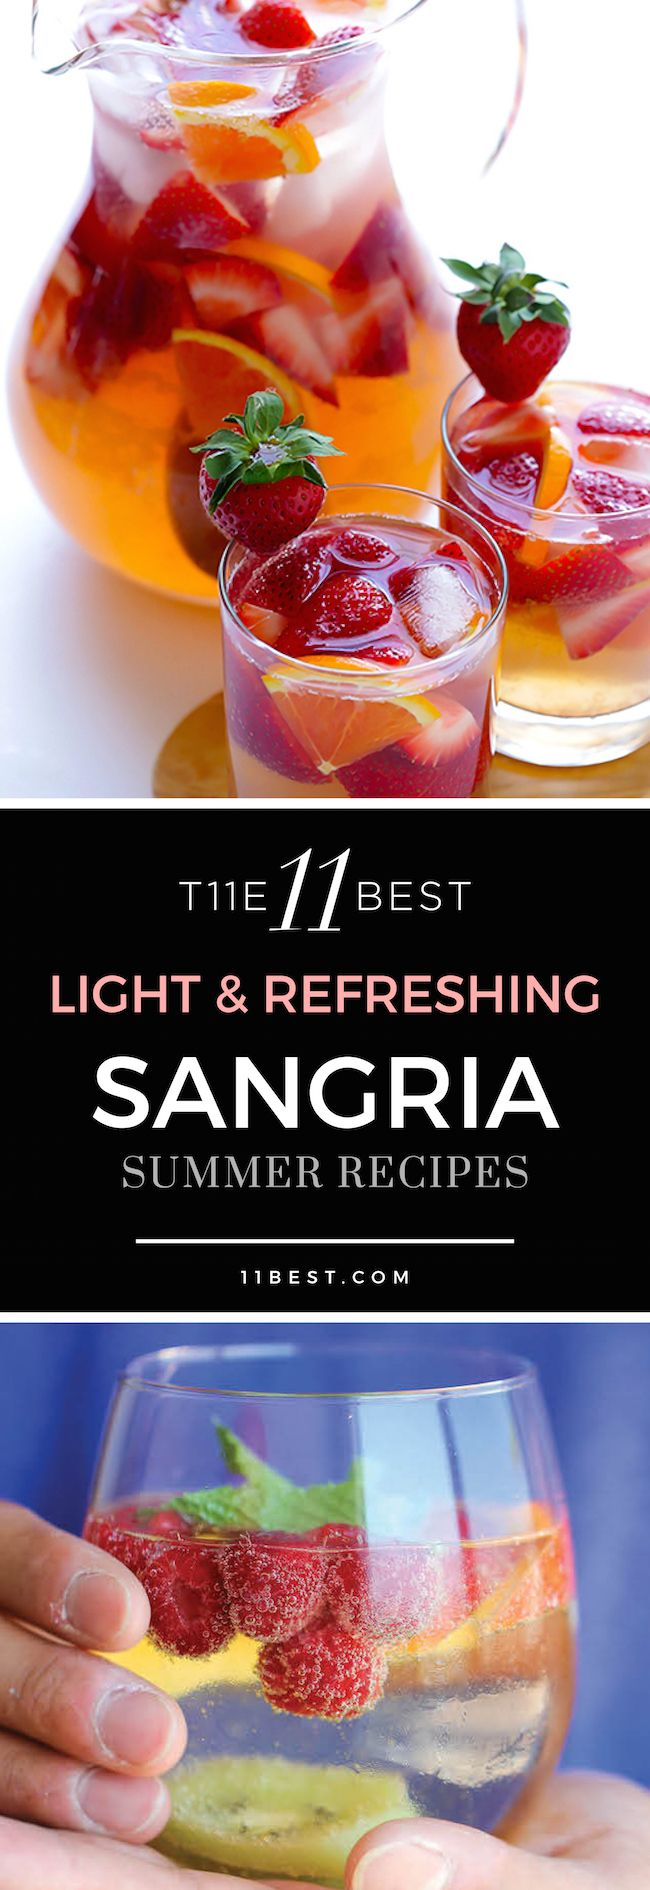 The 11 Best Refreshing Sangria Summer Recipes - Repinned by: http://www.barvivo.com/ (The highest quality within Bar & wine accessories.)